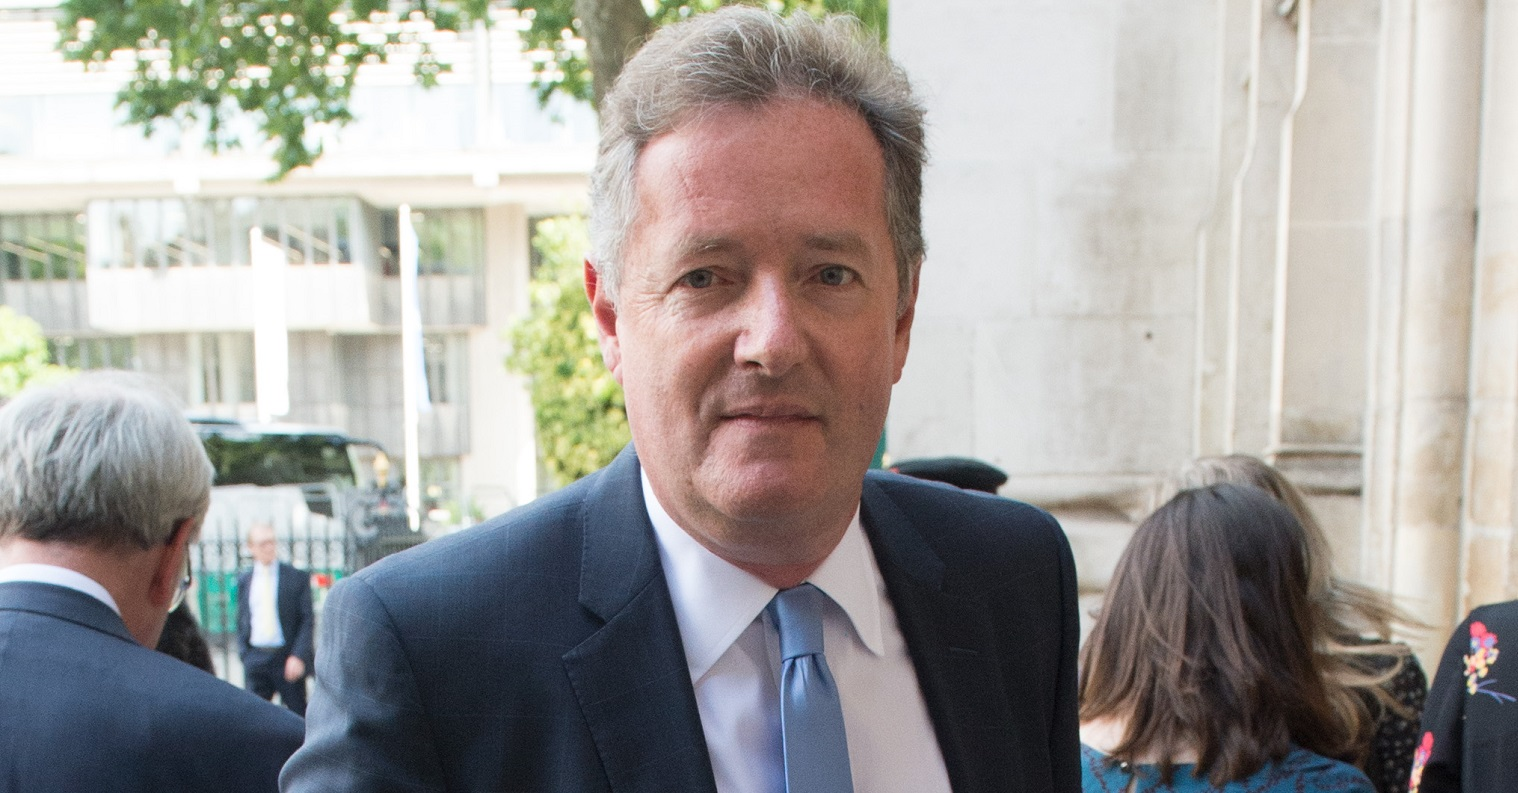 Piers Morgan fans fear for his health as he's snapped outside during break from Good Morning Britain